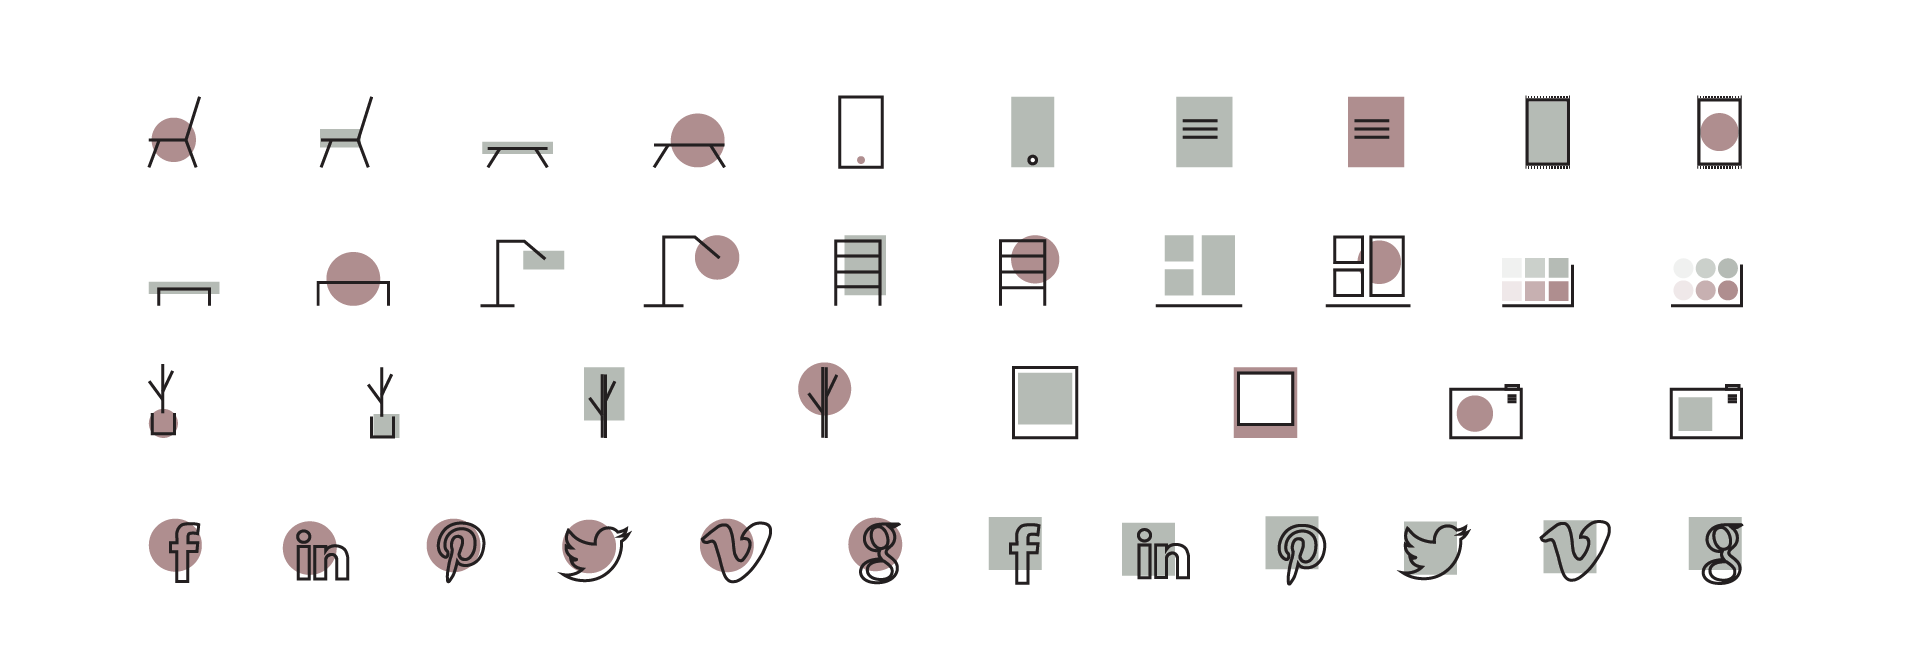 Free icons for interior design by Brando.ltd